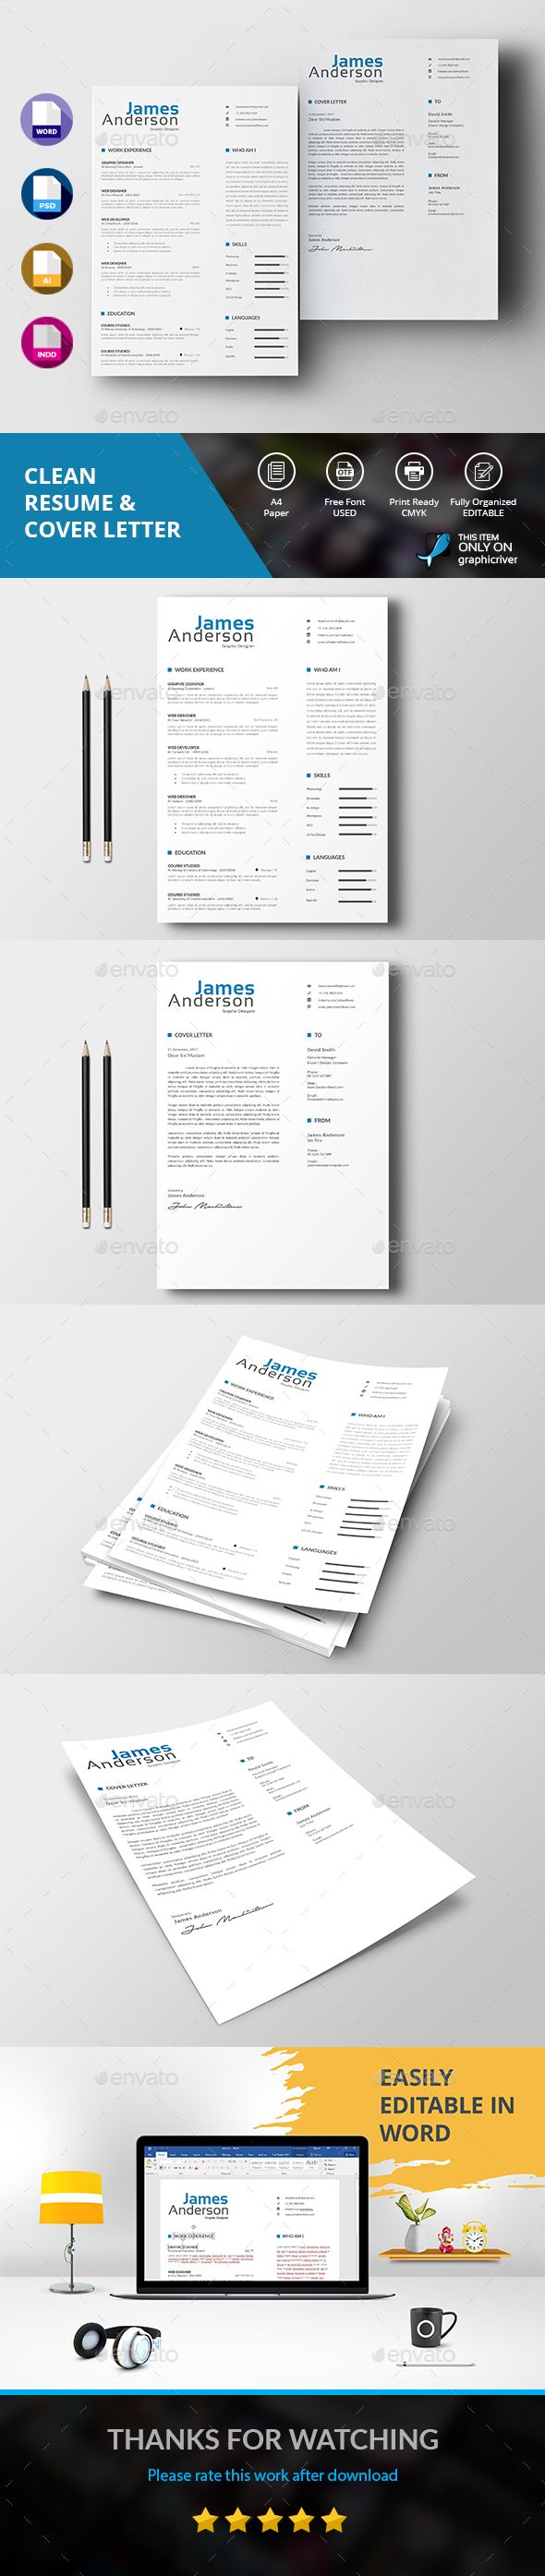 379 Best Resume Cover Latter Images On Pinterest Cover Letters